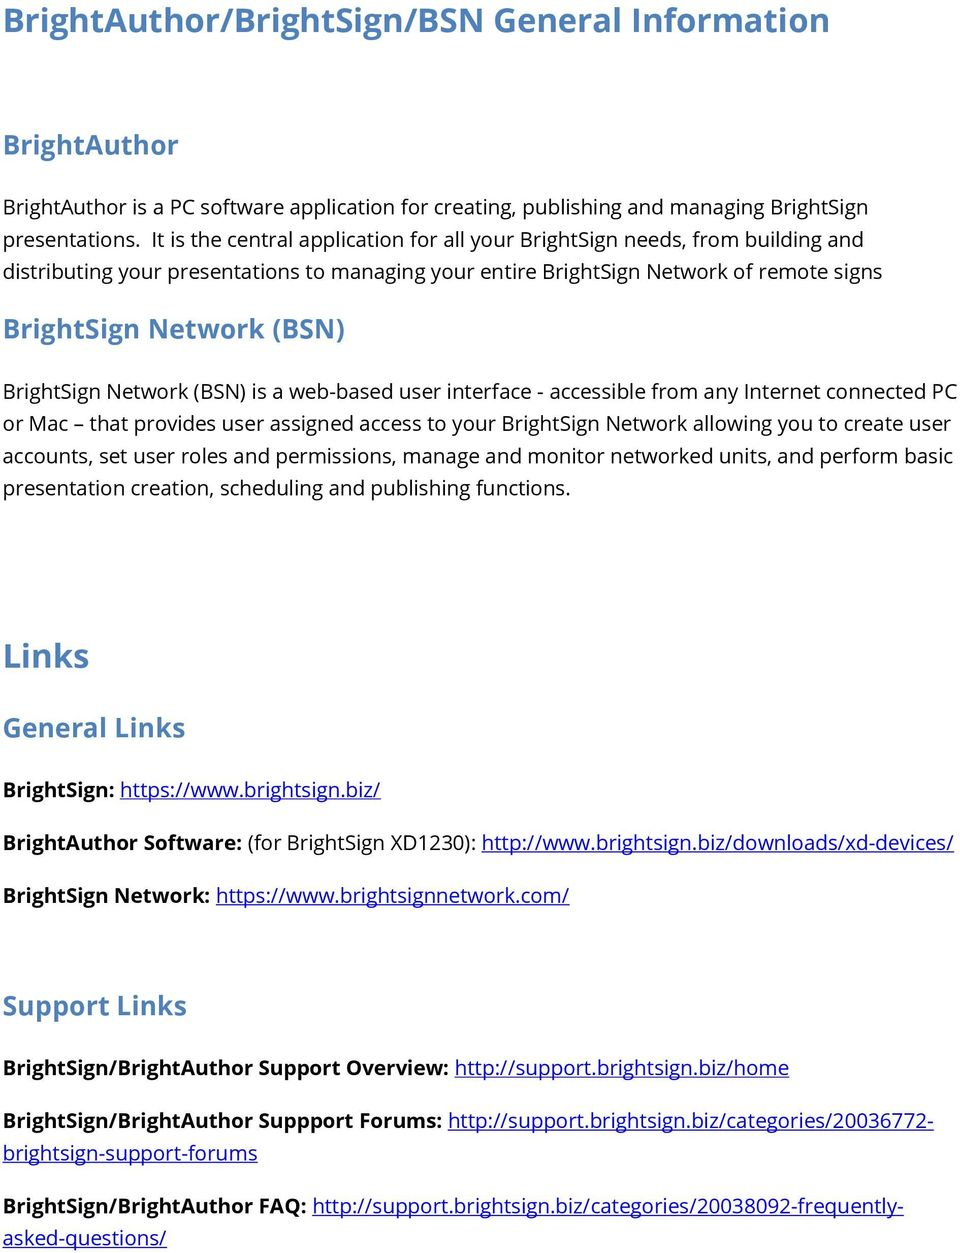 BrightSign Network (BSN) is a web-based user interface - accessible from any Internet connected PC or Mac that provides user assigned access to your BrightSign Network allowing you to create user